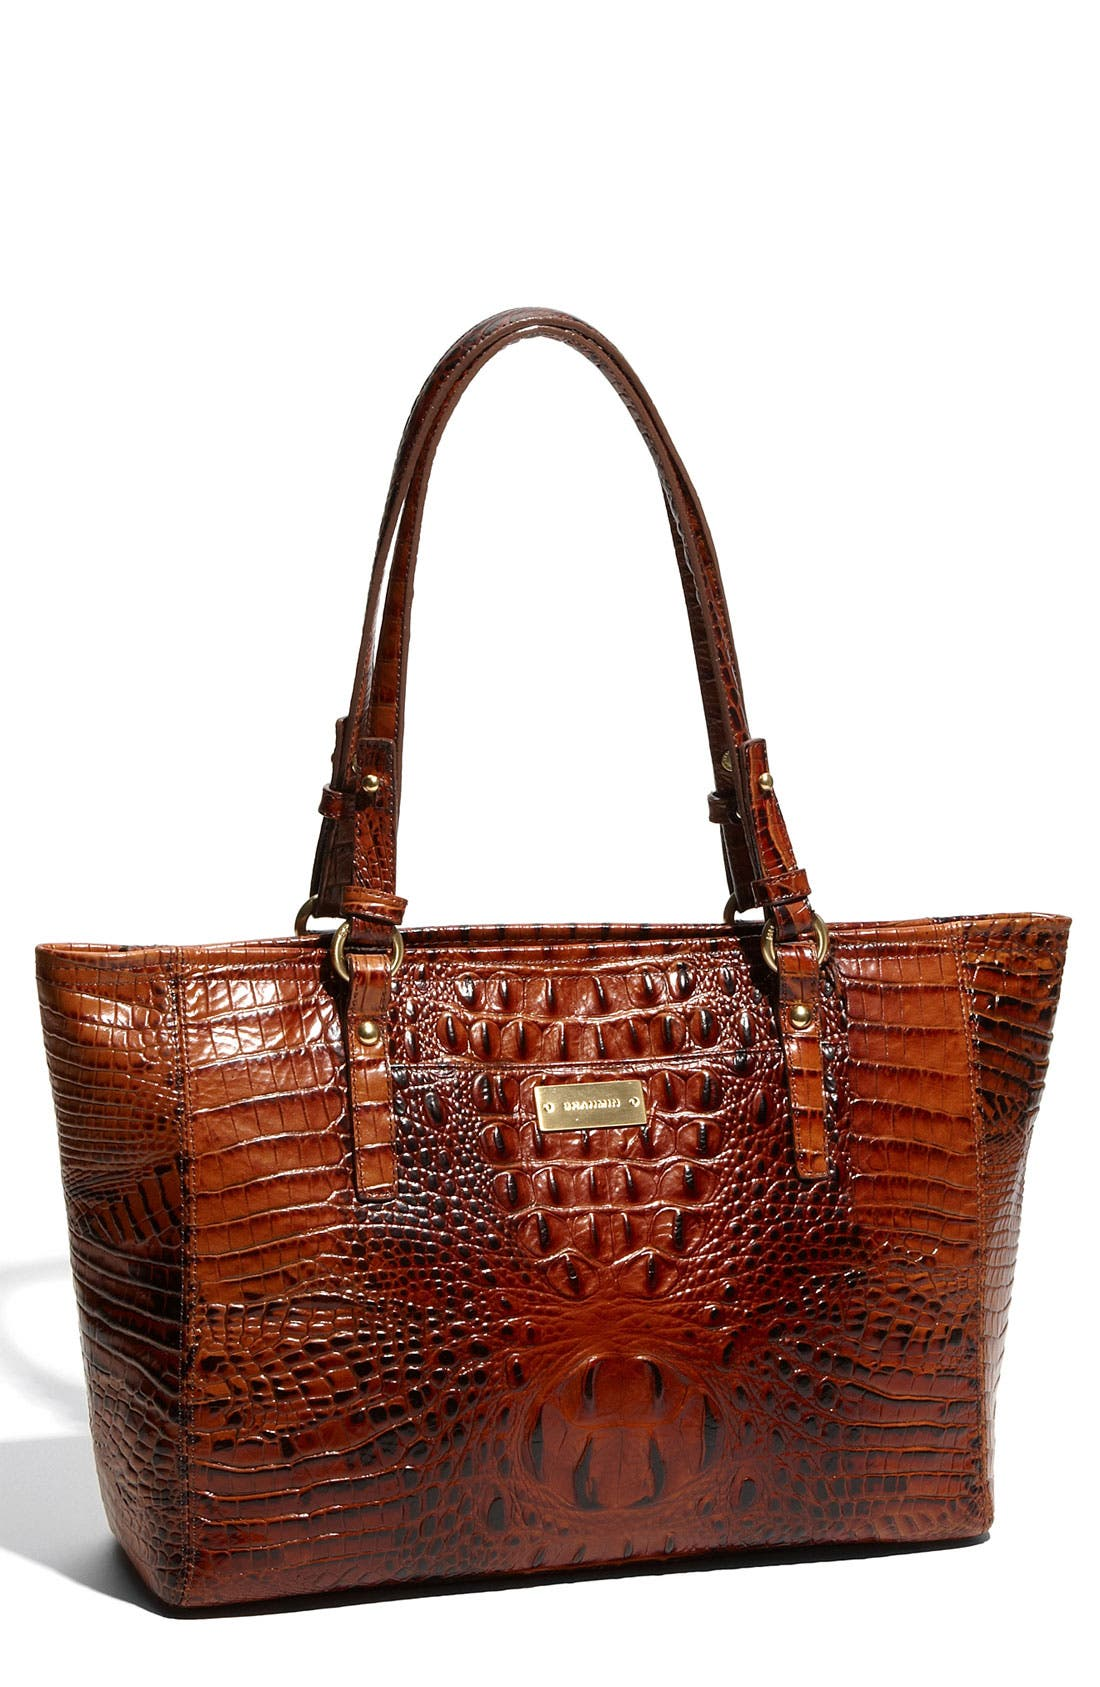 Main Image - Brahmin 'Medium Melbourne Arno' Croc Embossed Tote